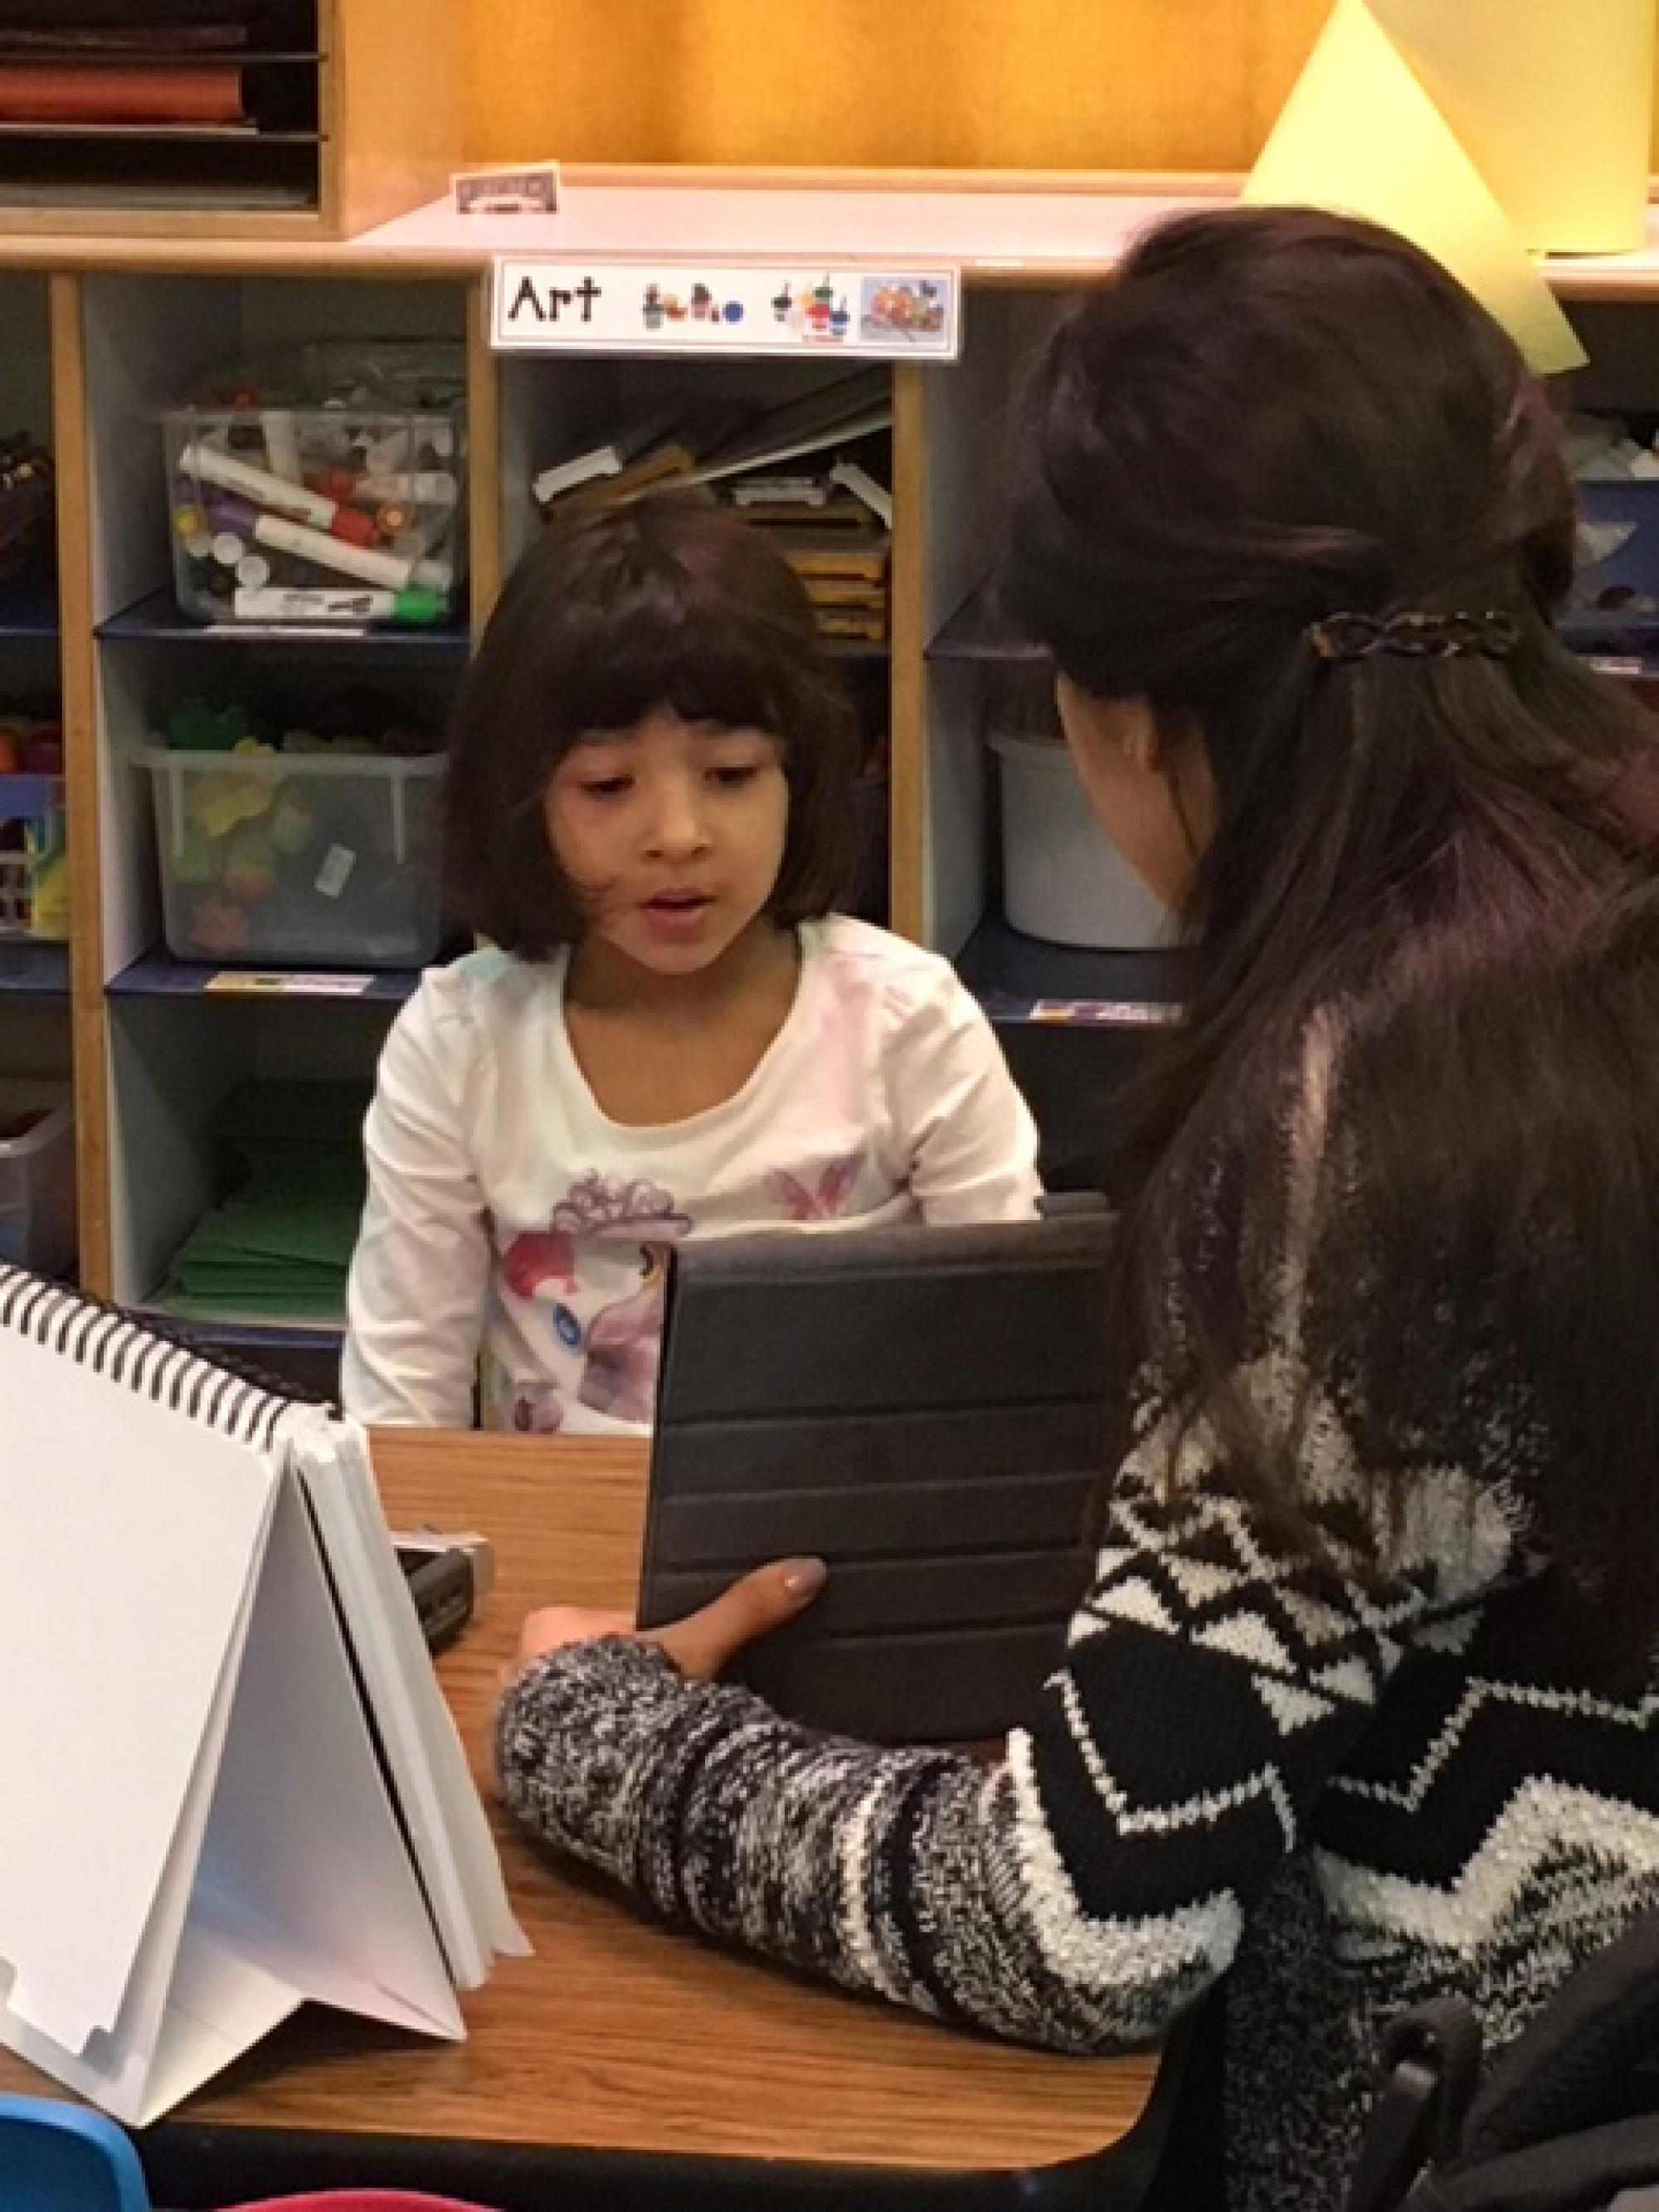 Pantoja asks a bilingual young girl to identify pictures on a tablet. Her answers are recorded and analyzed to determine if she is having trouble with speech sound production.